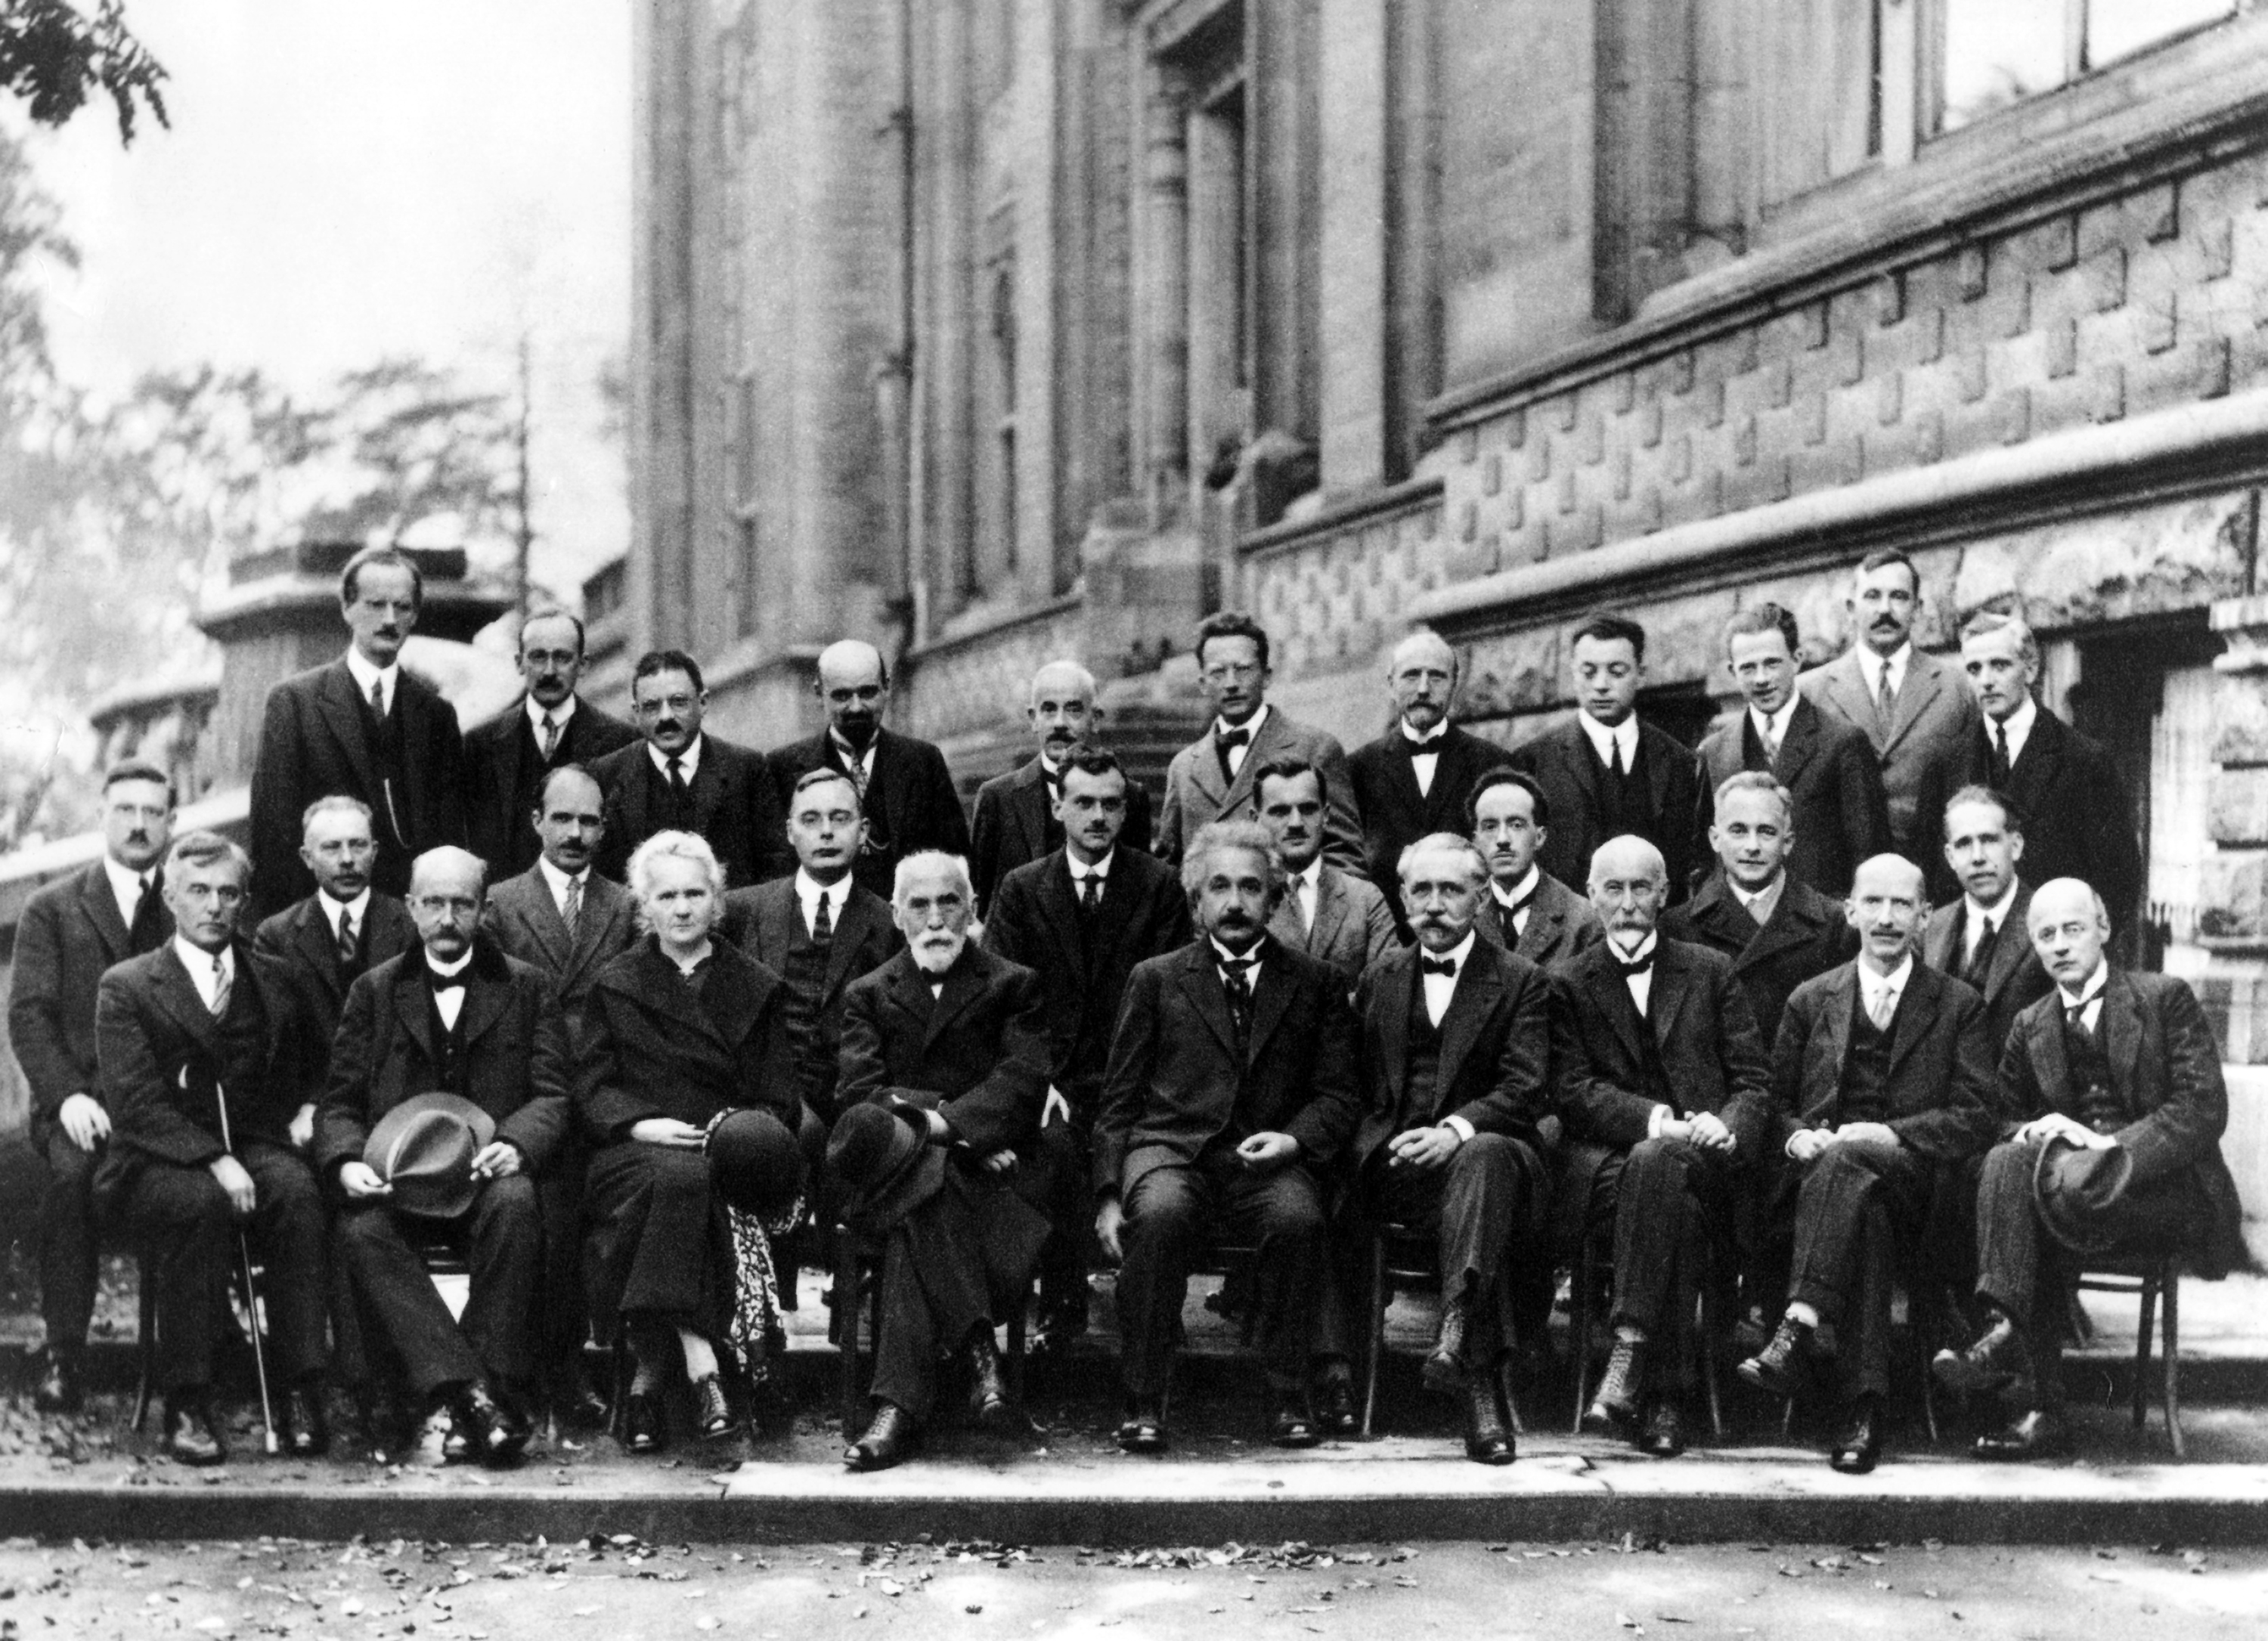 albert einstein   wikipediathe solvay conference in brussels  a gathering of the world    s top physicists  einstein is in the center